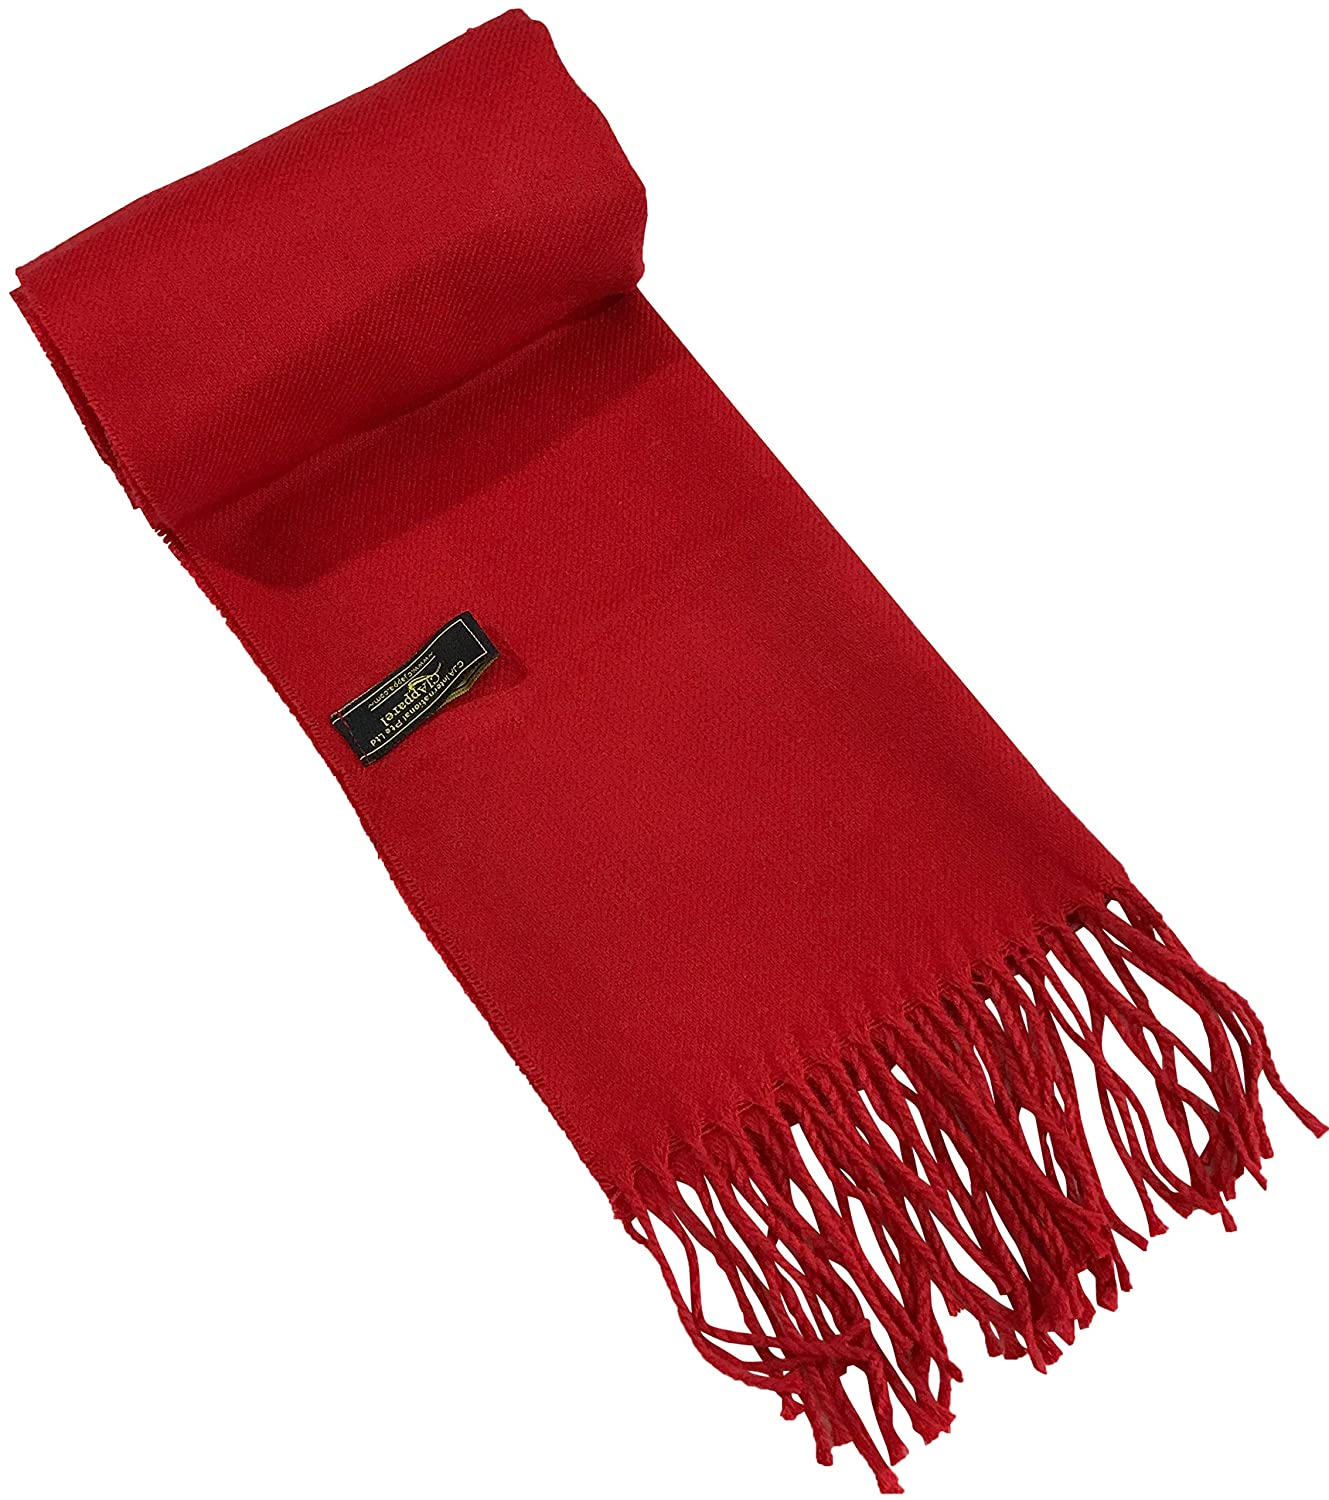 CJ Apparel Red Mens Solid Colour Design Fashion Knitted Scarf Seconds Scarves Fall//Winter Wrap NEW